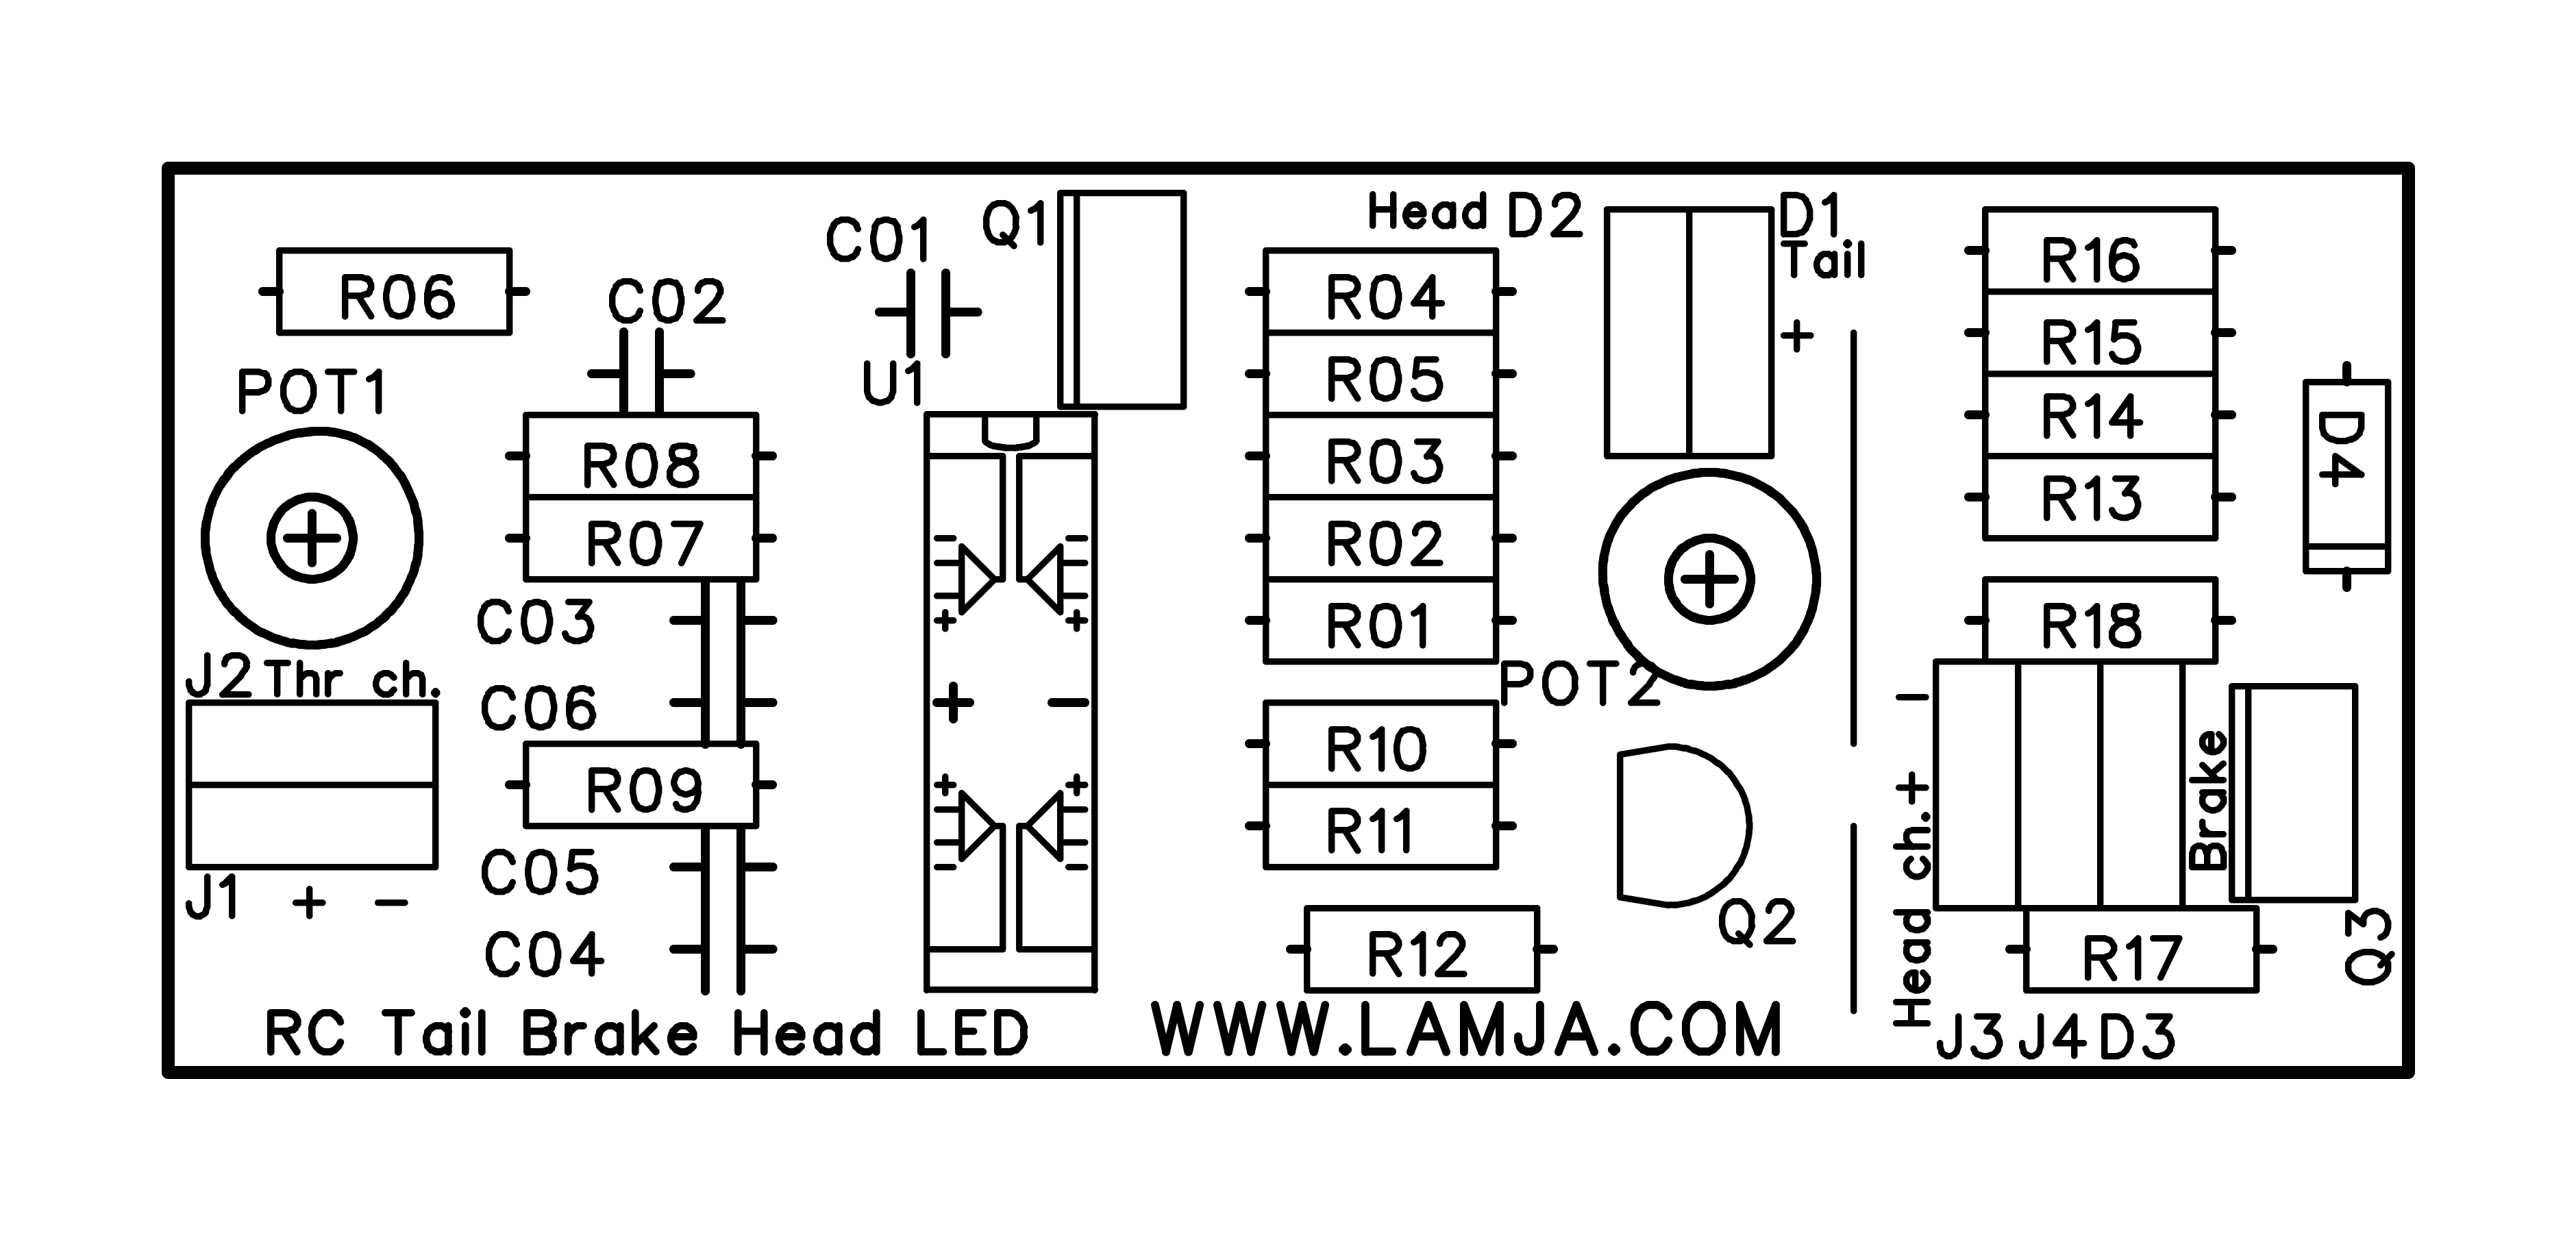 Rc Car Head Tail And Brake Lights Led Control Board